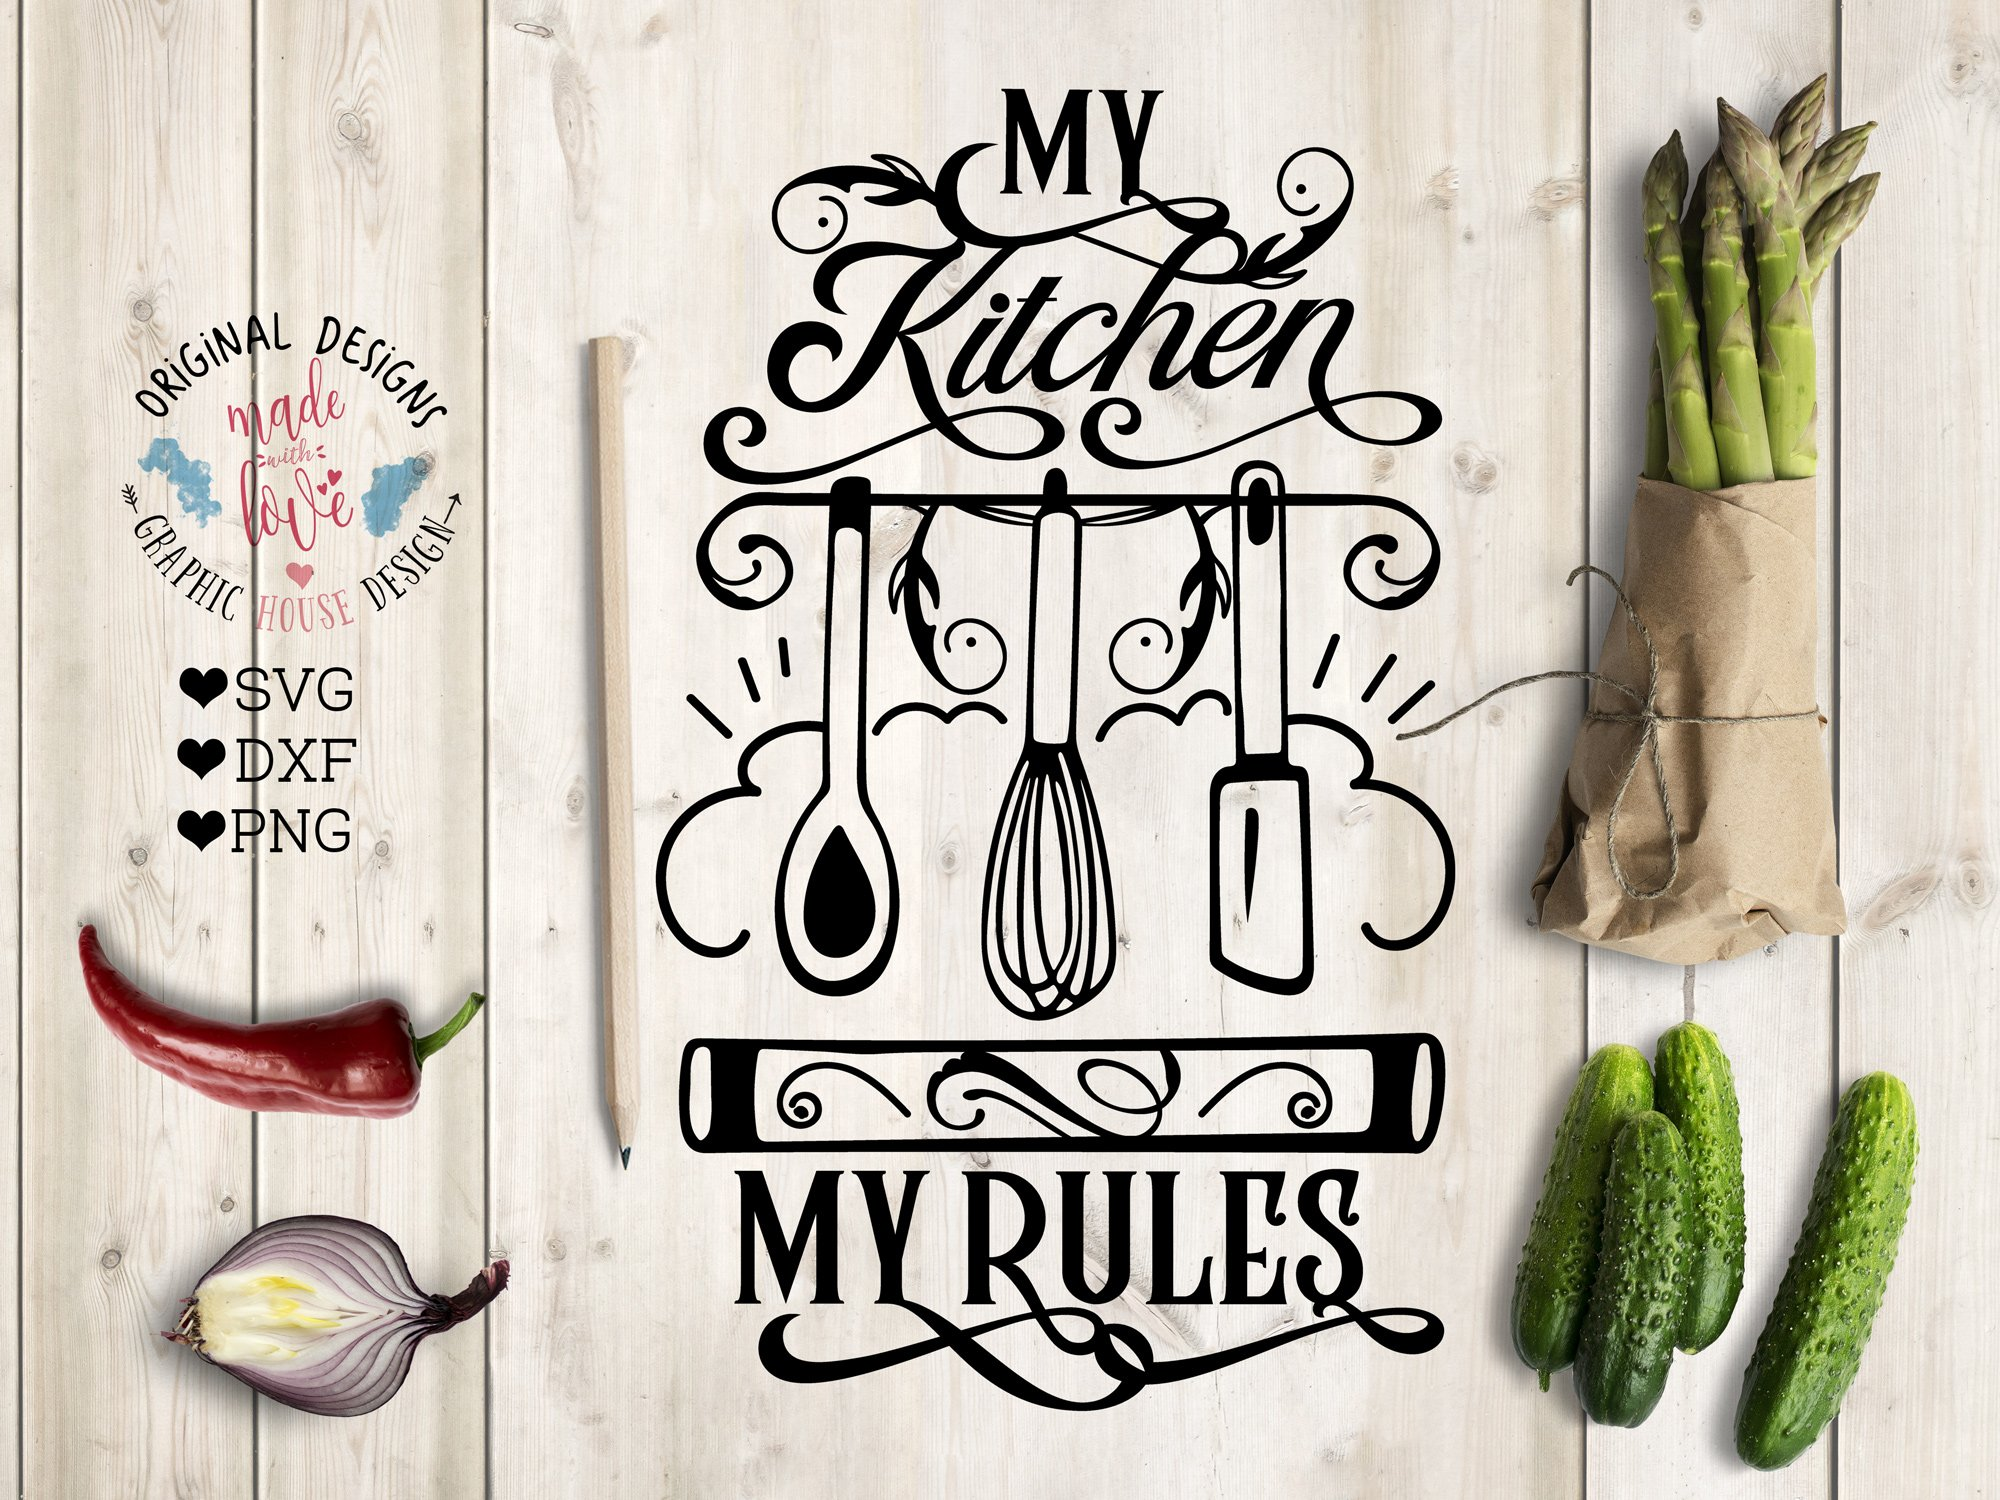 21+ Split Kitchen Svg File Cutting Files Cricut & Cameo Kitchen Utensils Silhouette Svg Cooking Food Stickers Clipart Tools Clip Art -571S DXF